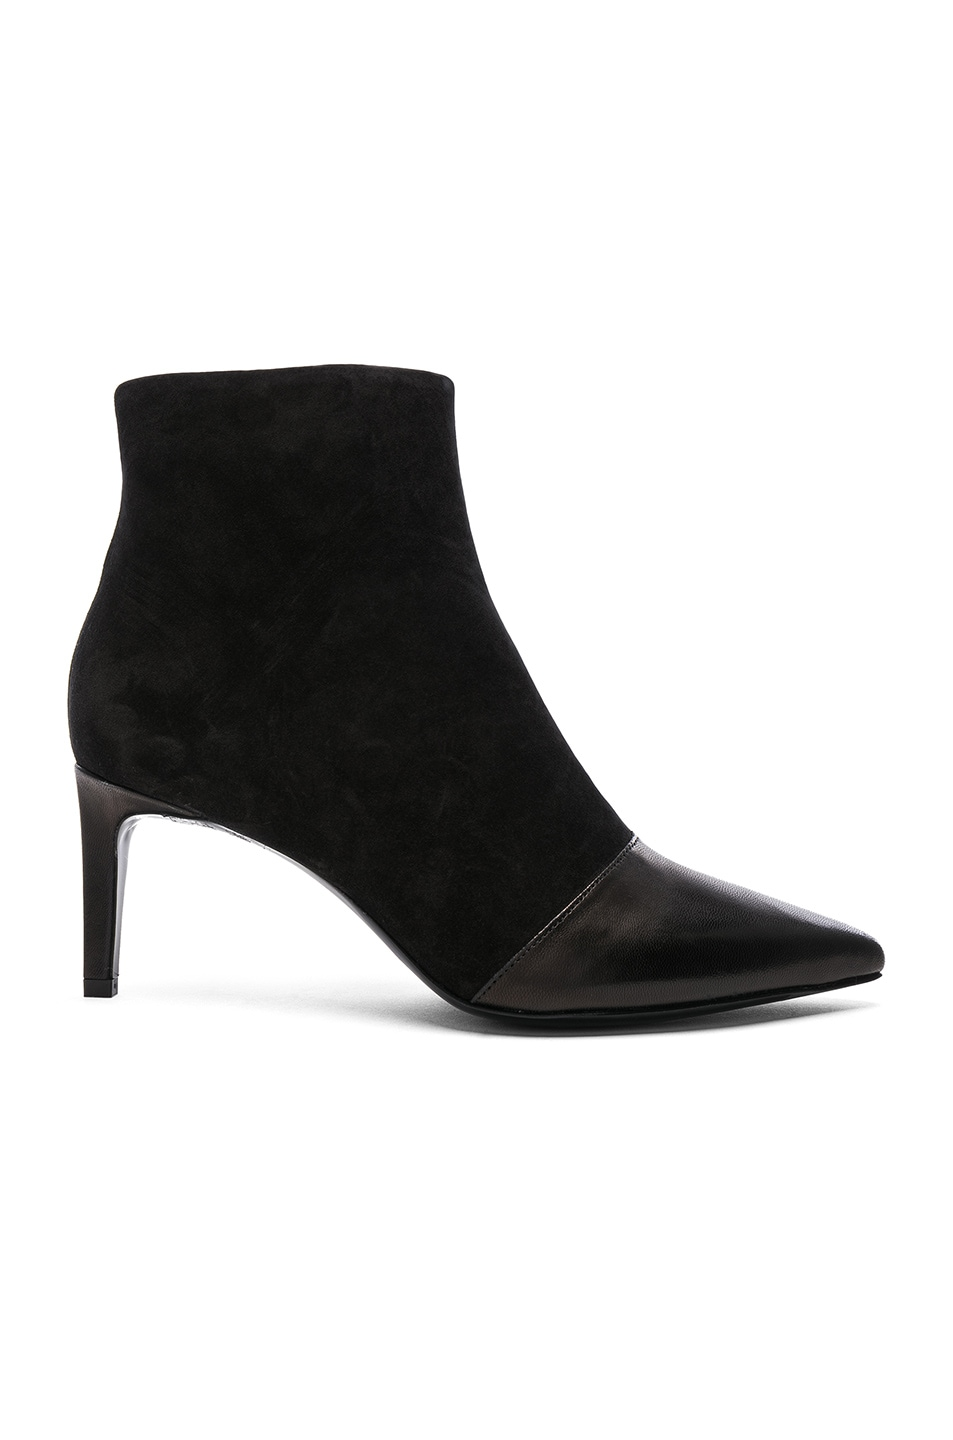 RAG&BONE Leather Beha Boots in . ga3LviG394